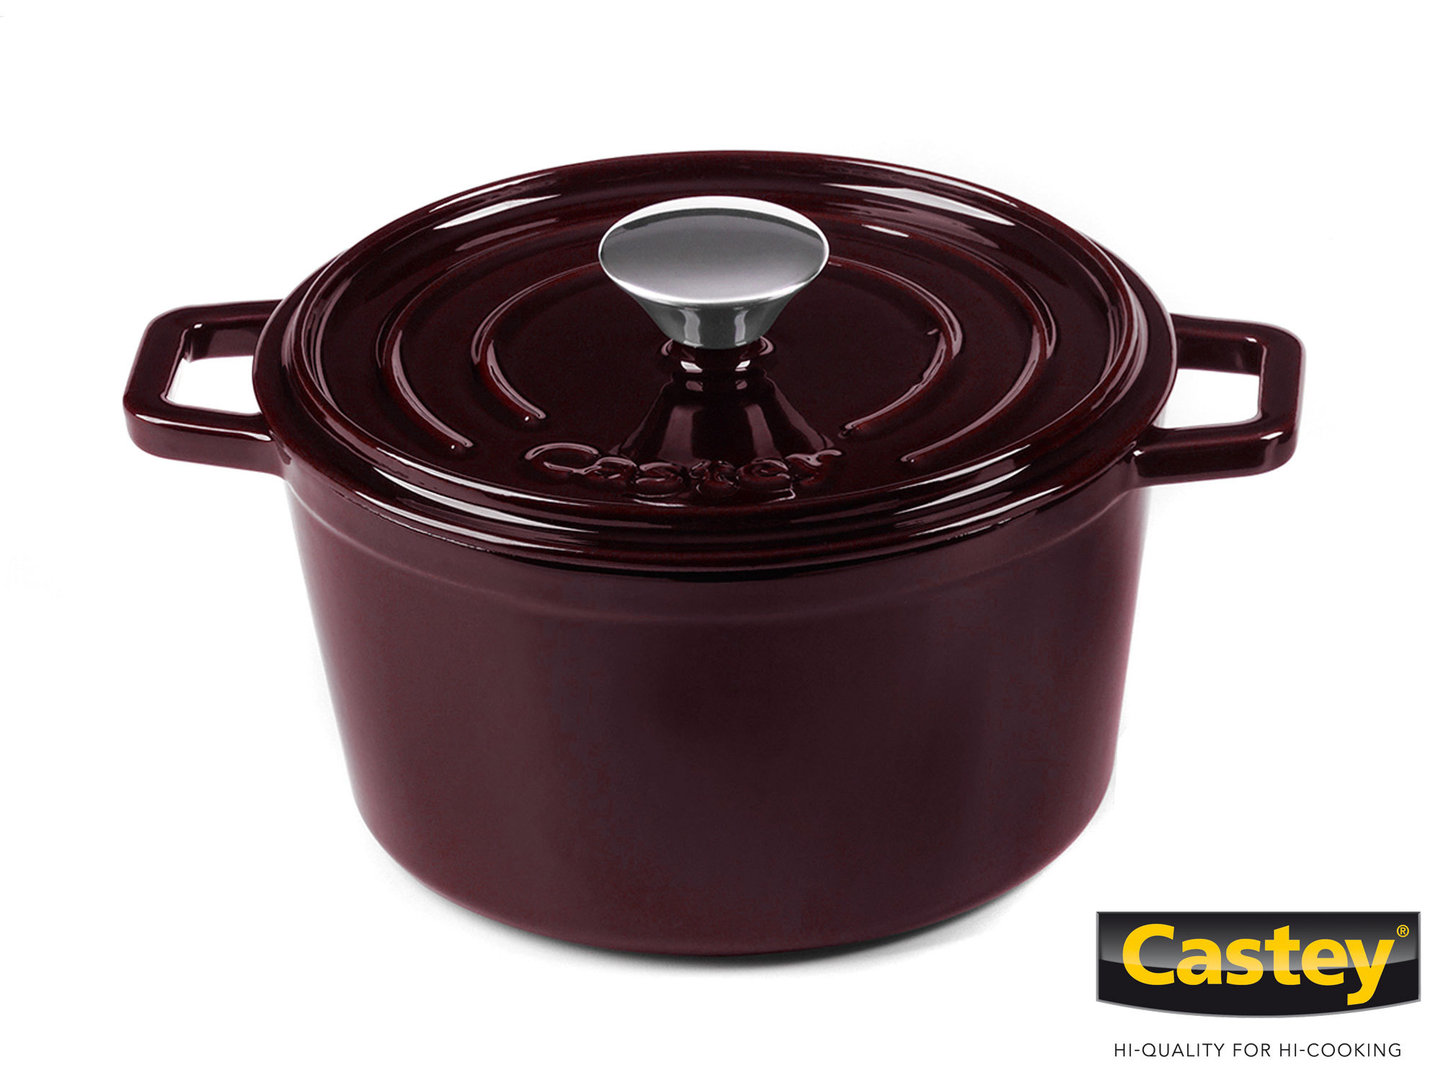 CASTEY Gusseisen Topf COCOTTE 18 cm PURPUR Emaille